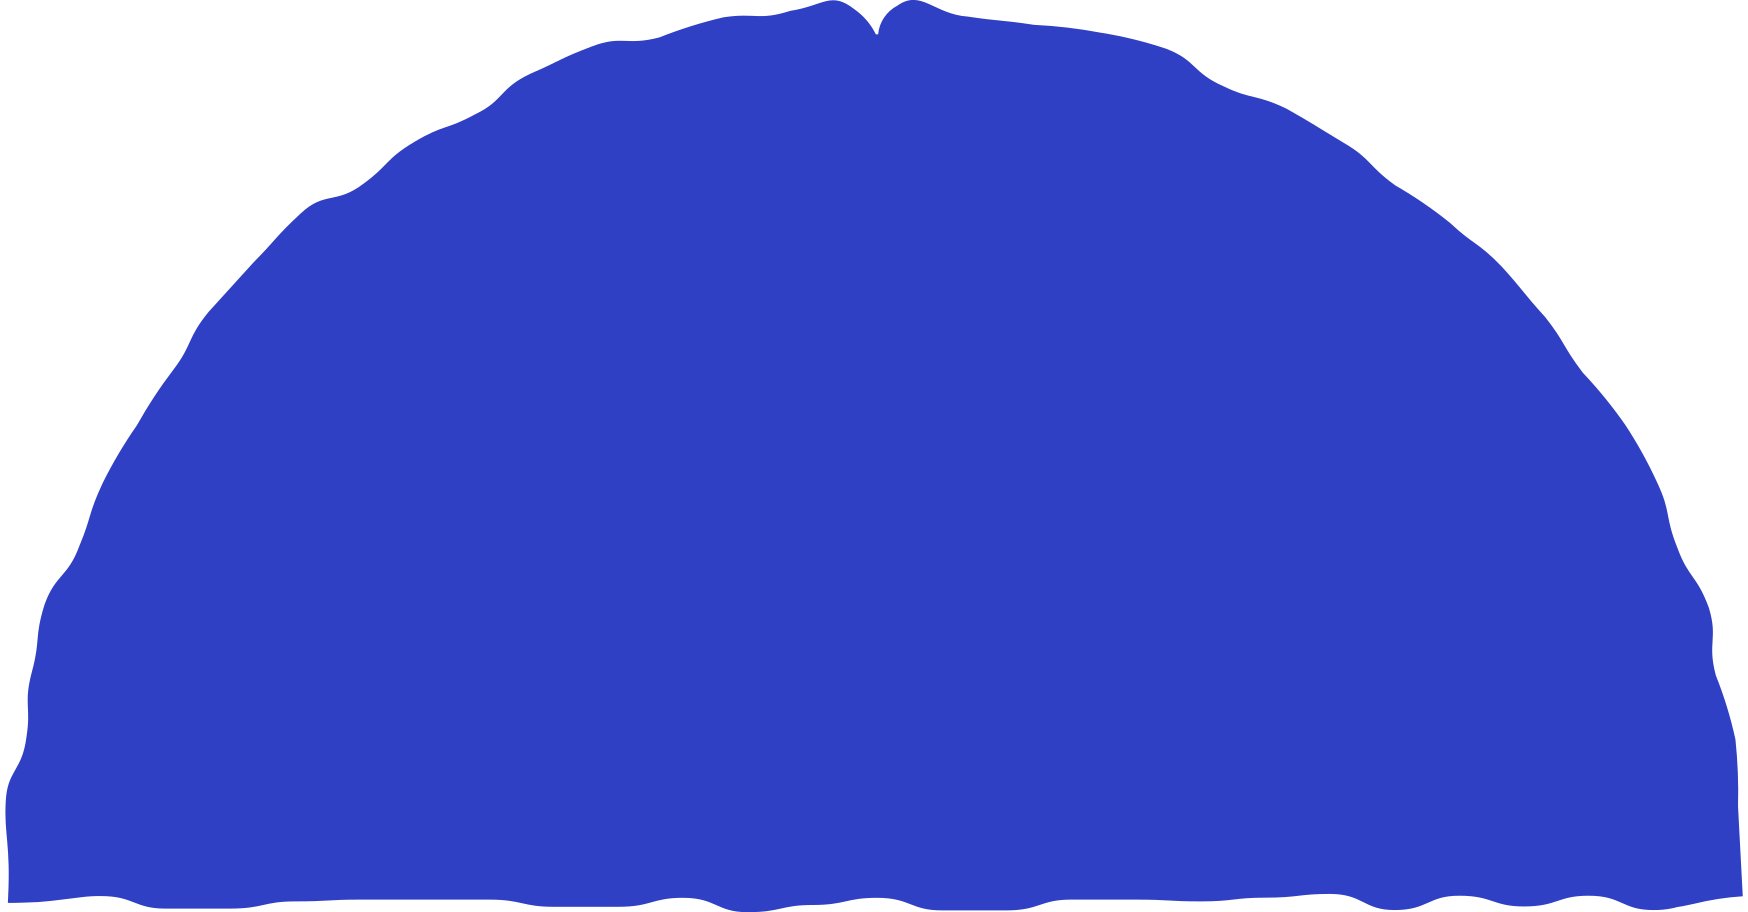 style semicircle blue Vector images in PNG and SVG   Icons8 Illustrations